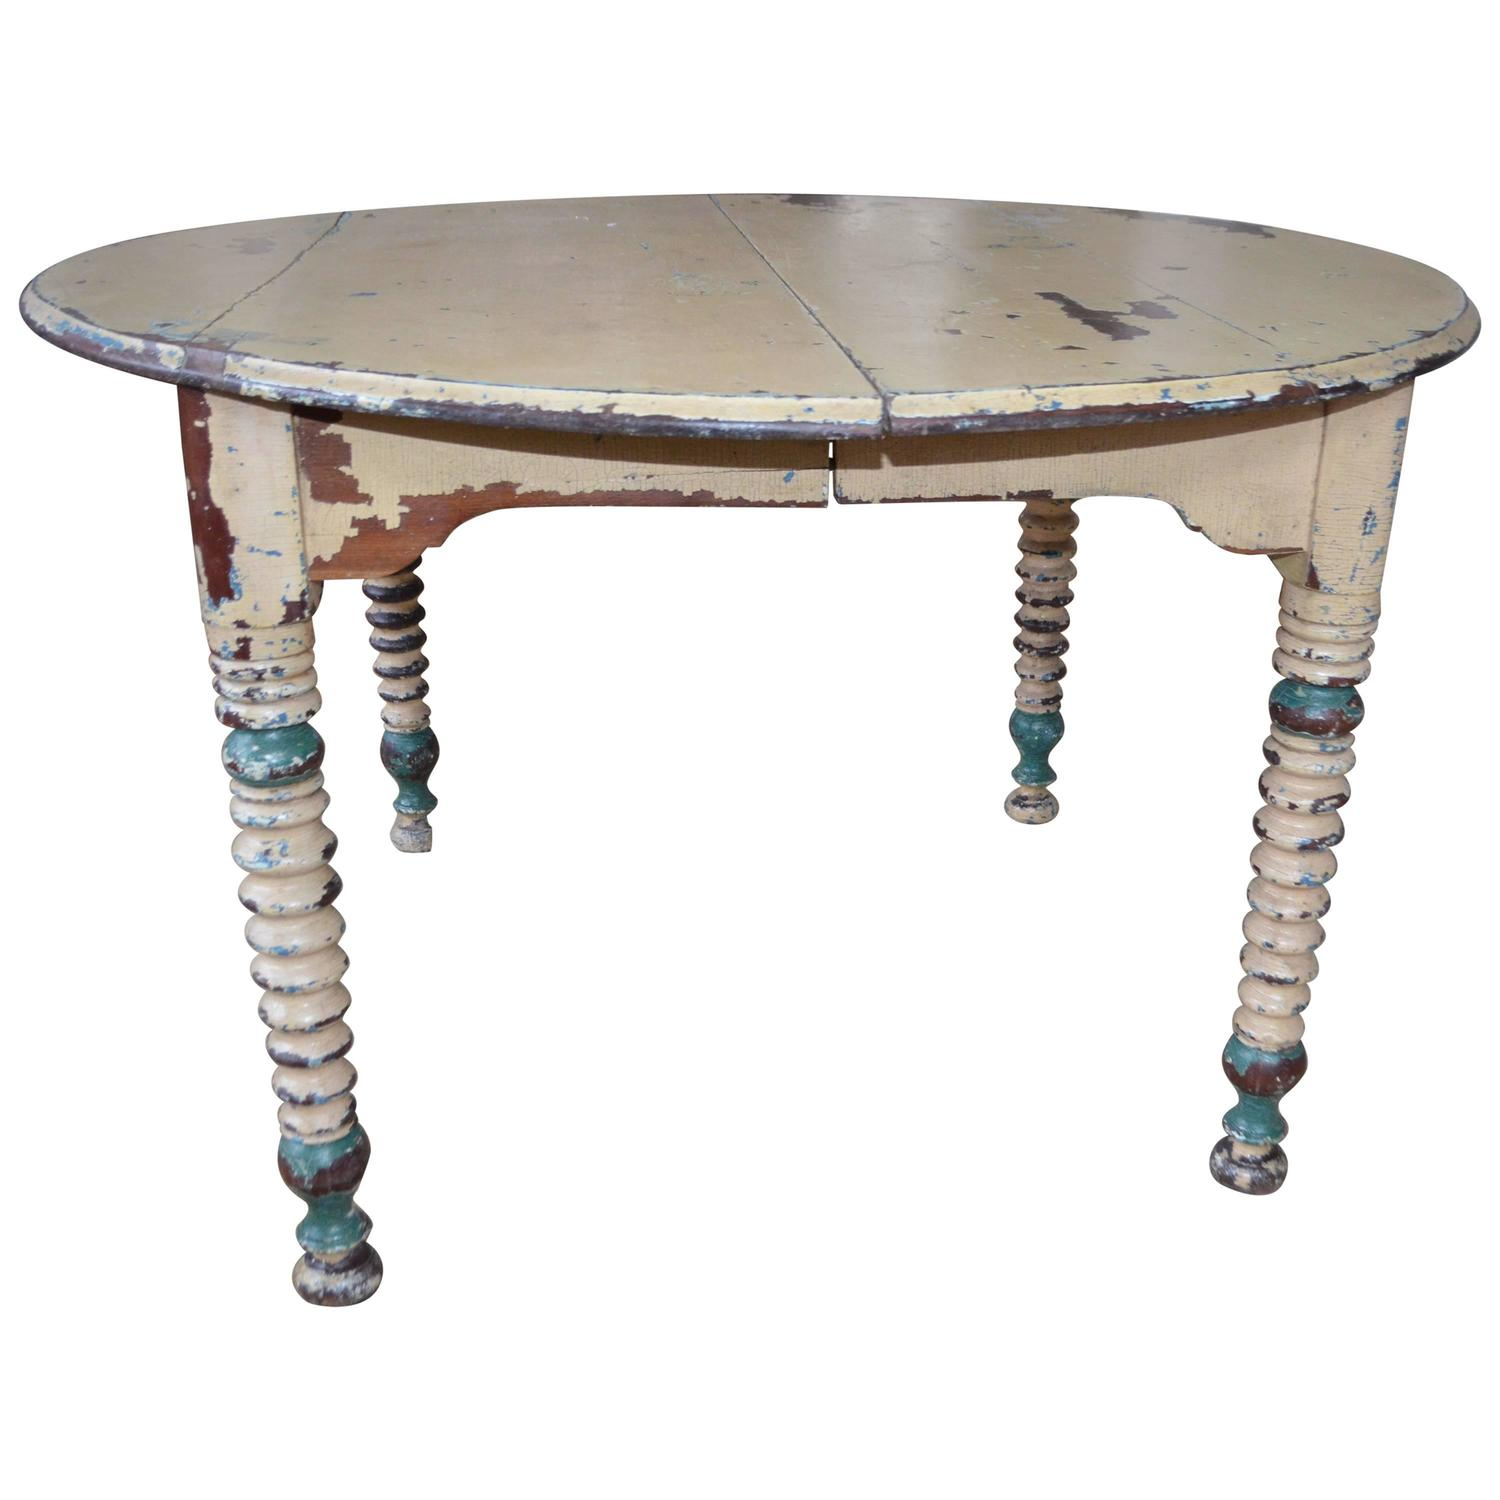 Round Farm Table Primitive Antique with Original Paint at 1stdibs